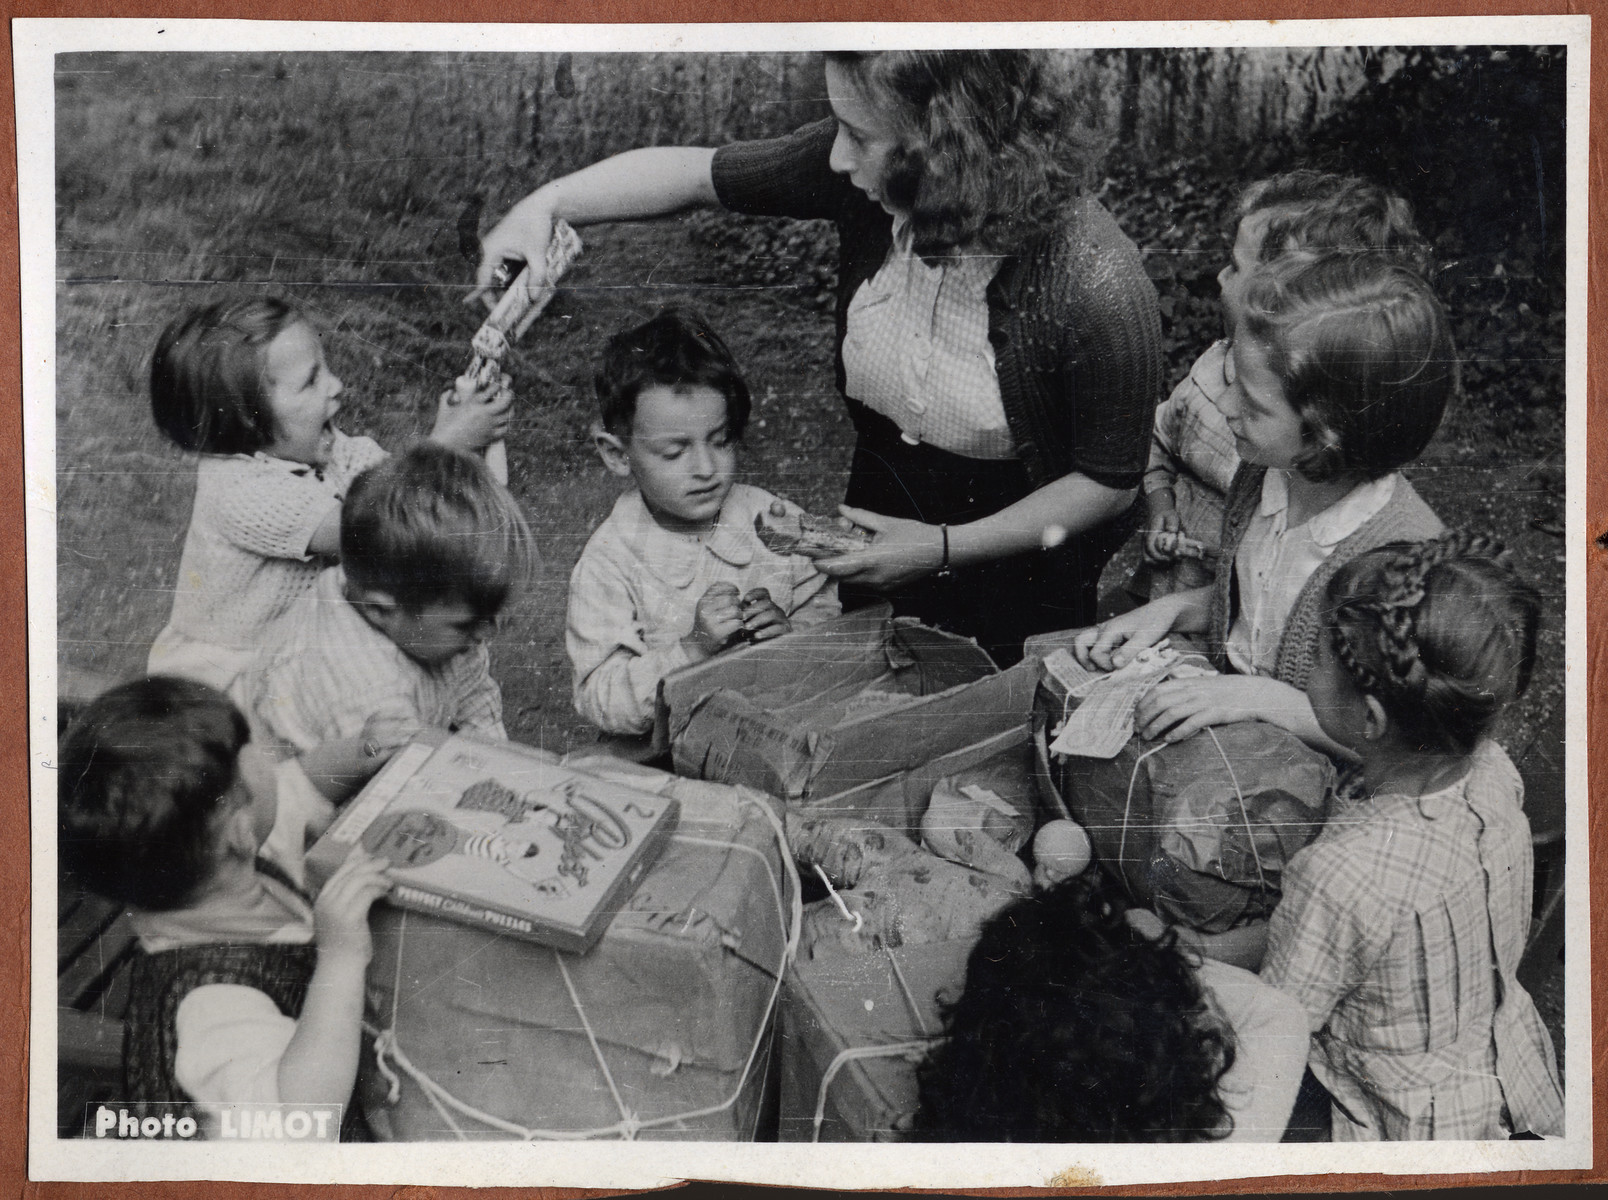 A group of children gather around their caretaker as they open packages filled with toys.